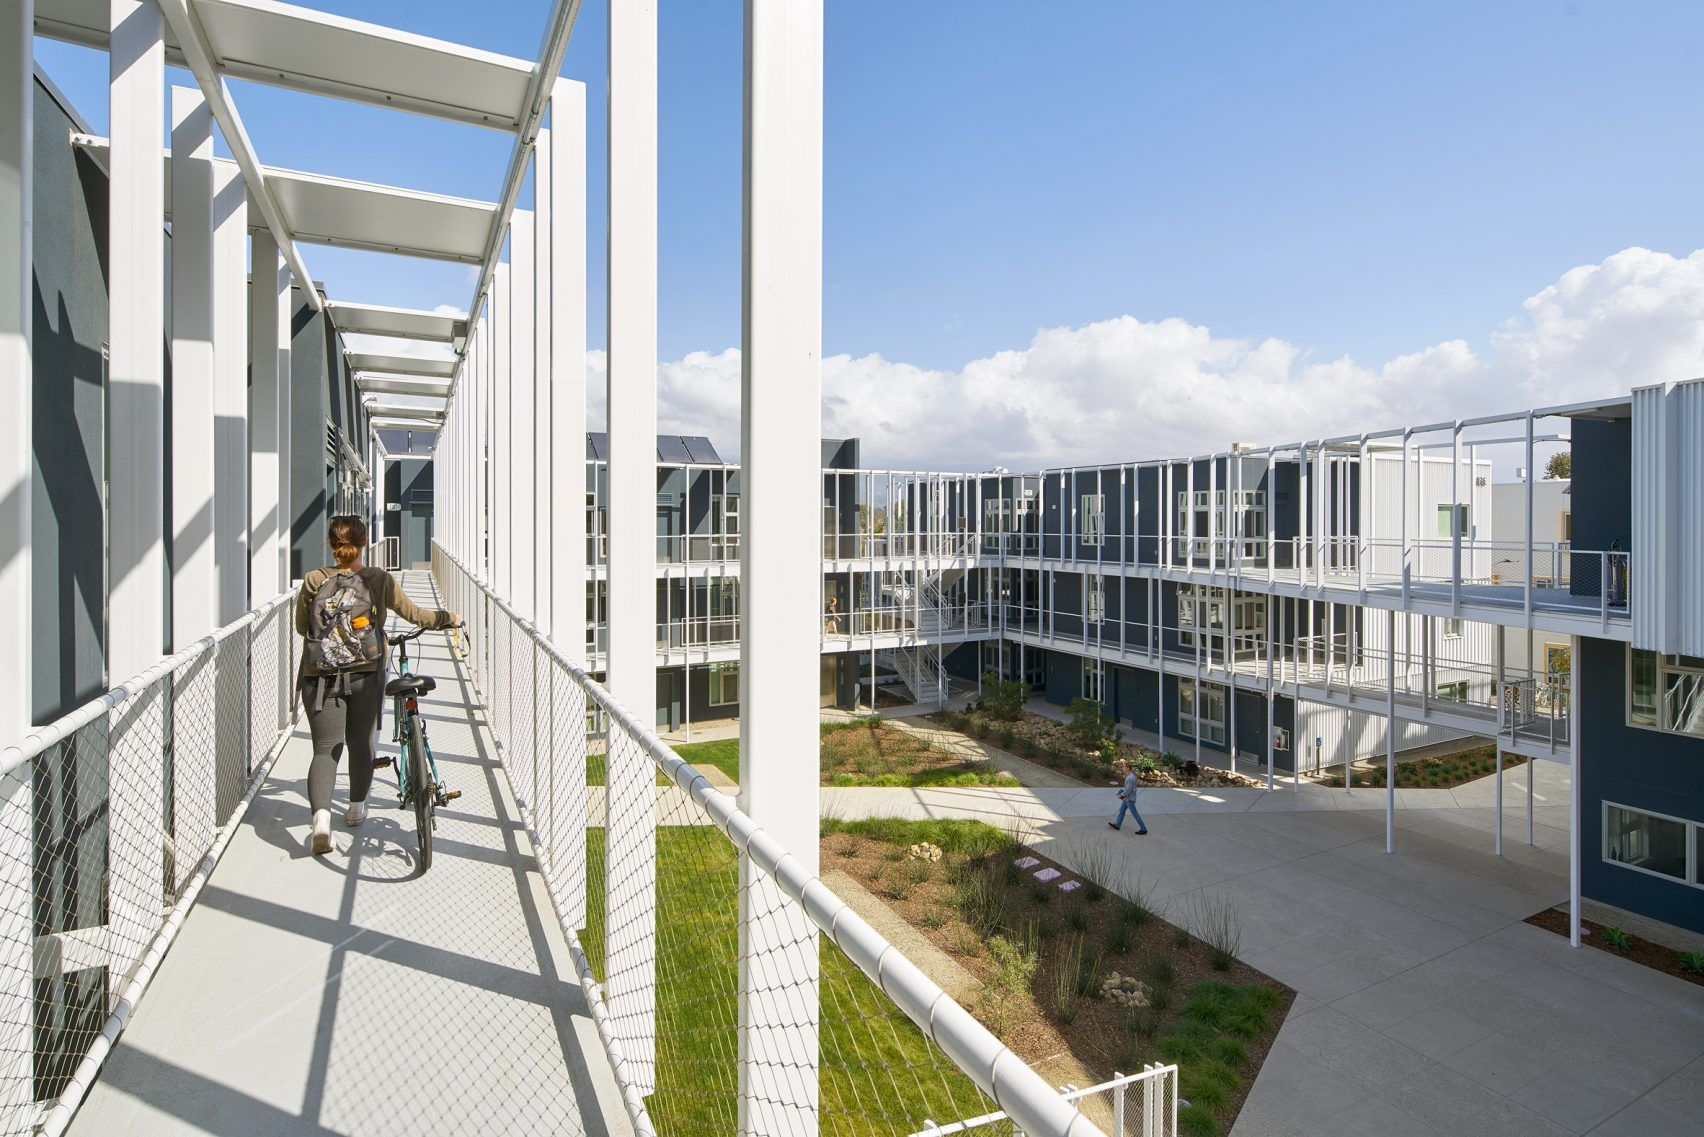 Loha S San Joaquin Student Housing Makes Most Of Coastal Climate Student House Nordic House Architecture Architect